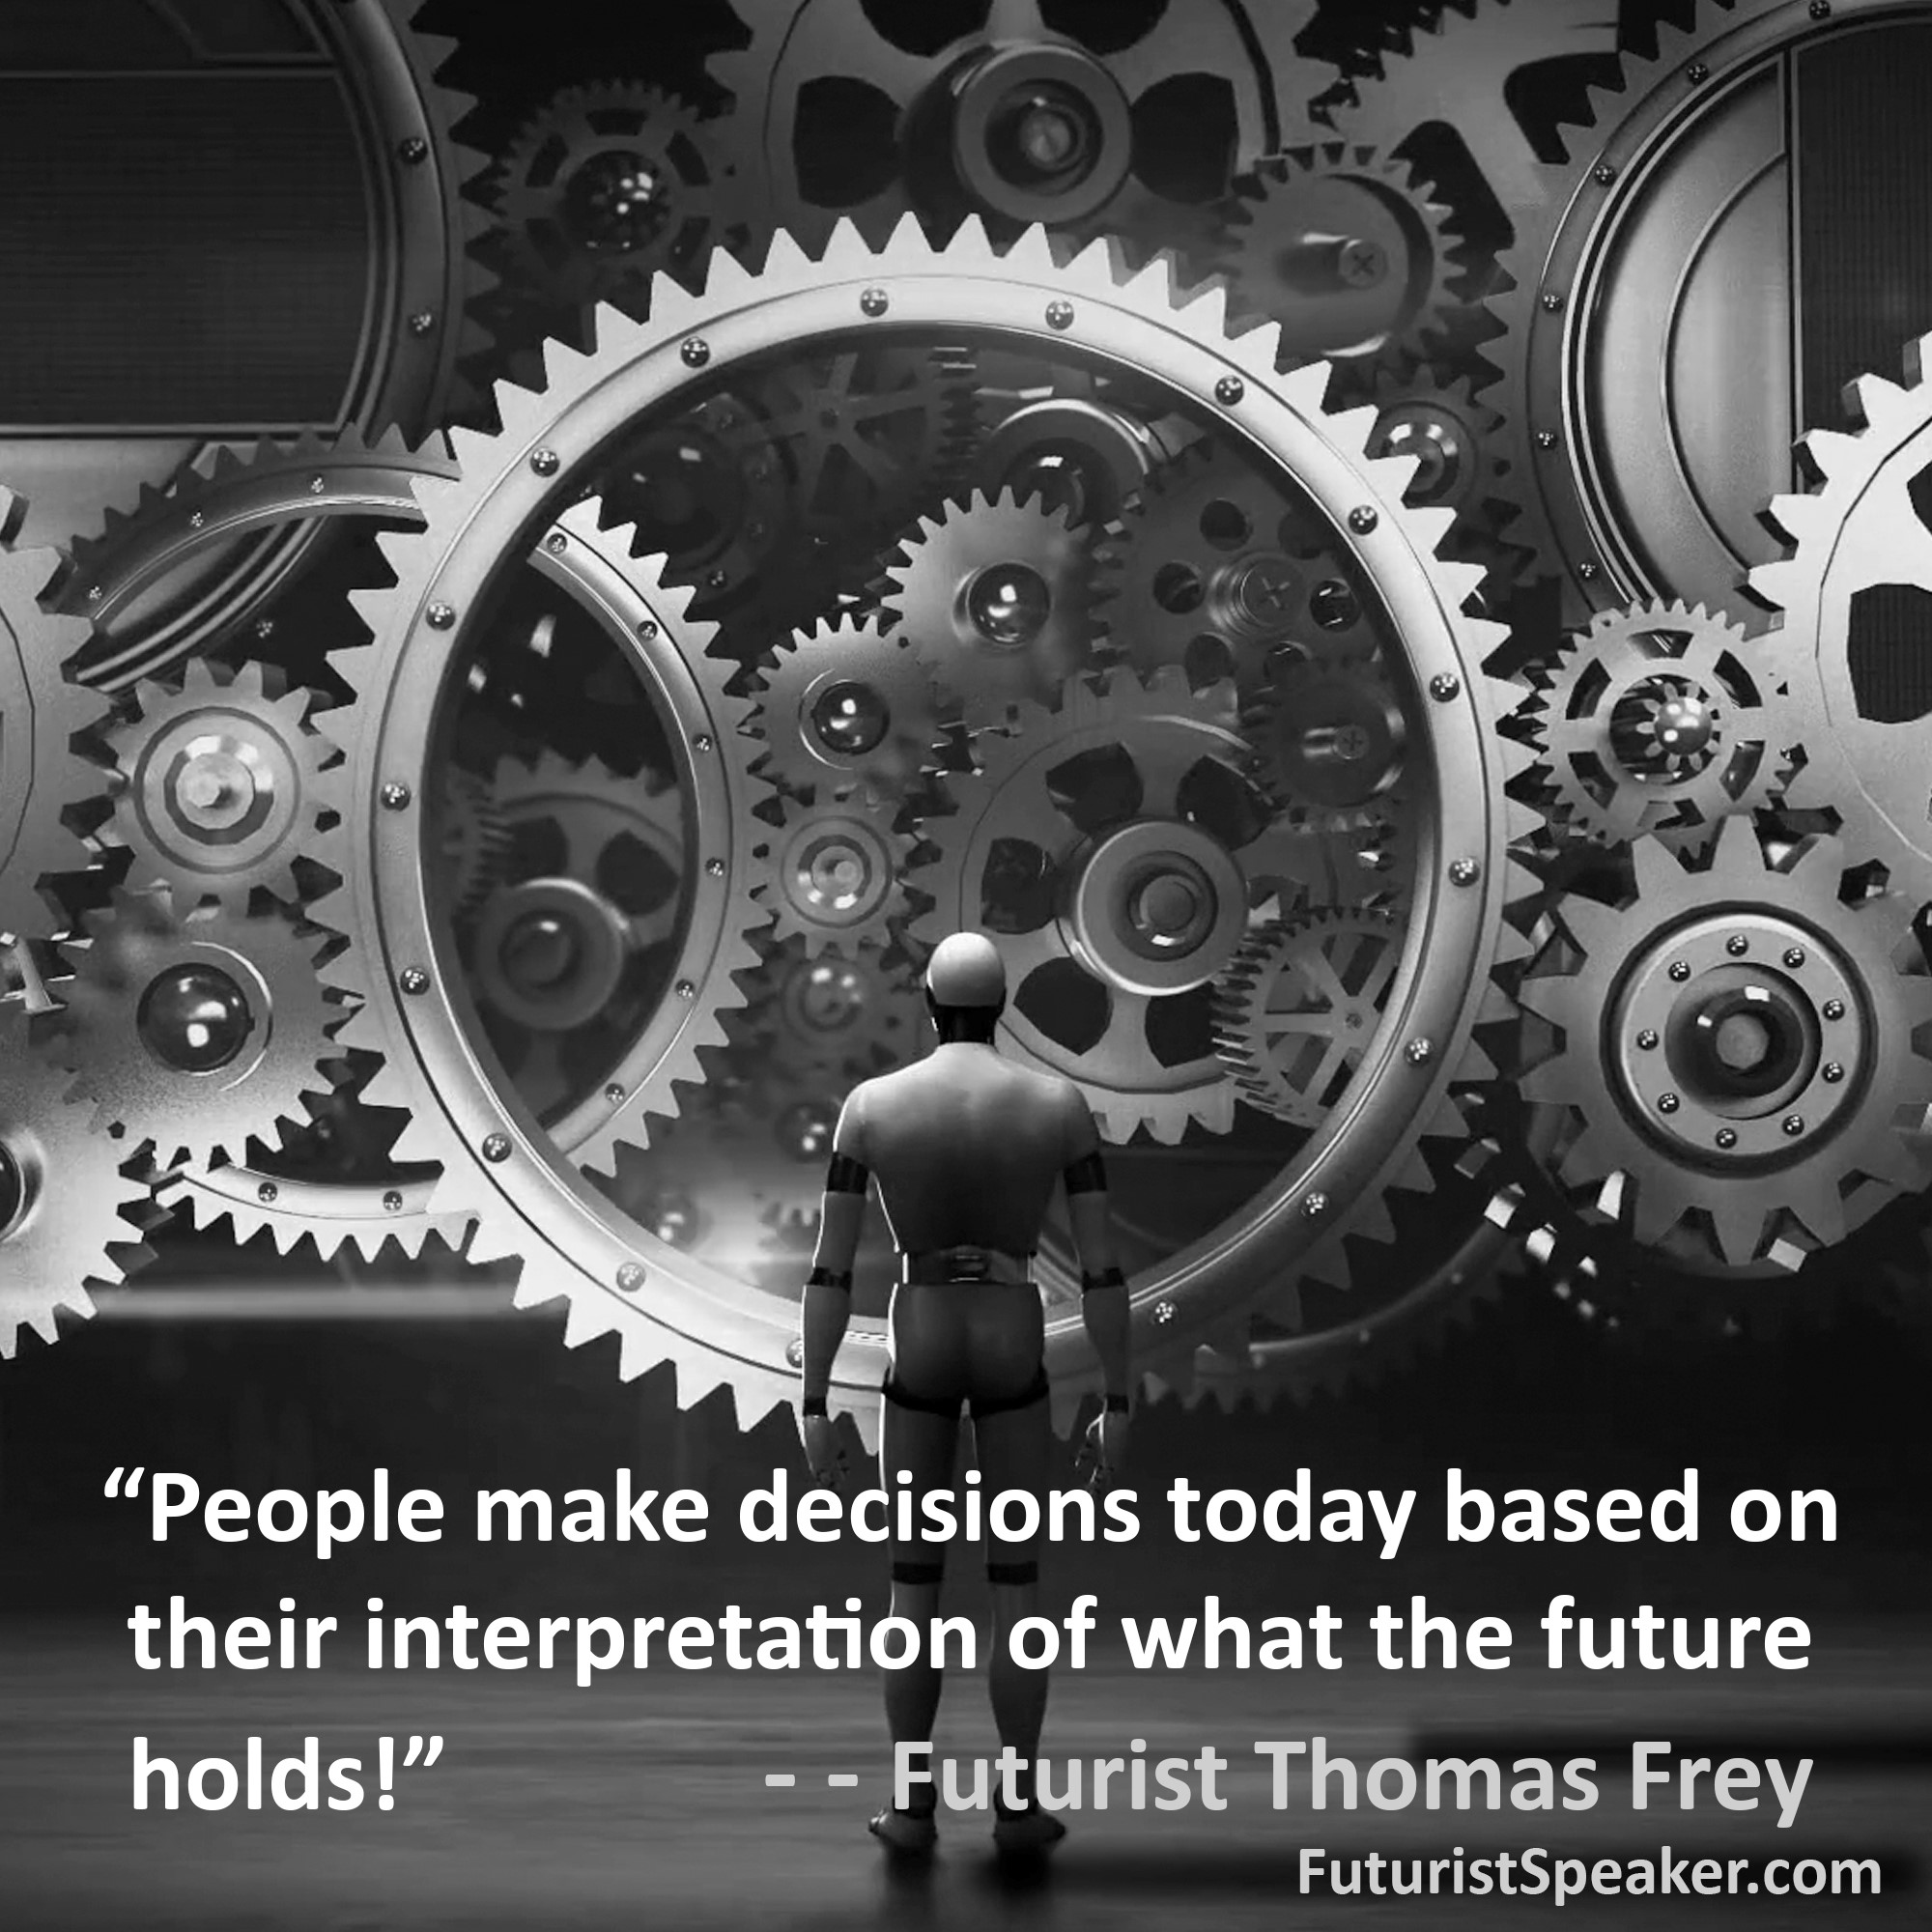 Thomas Frey Futurist Speaker Famous Quote: People make decisions today based on their interpretation of what the future holds.